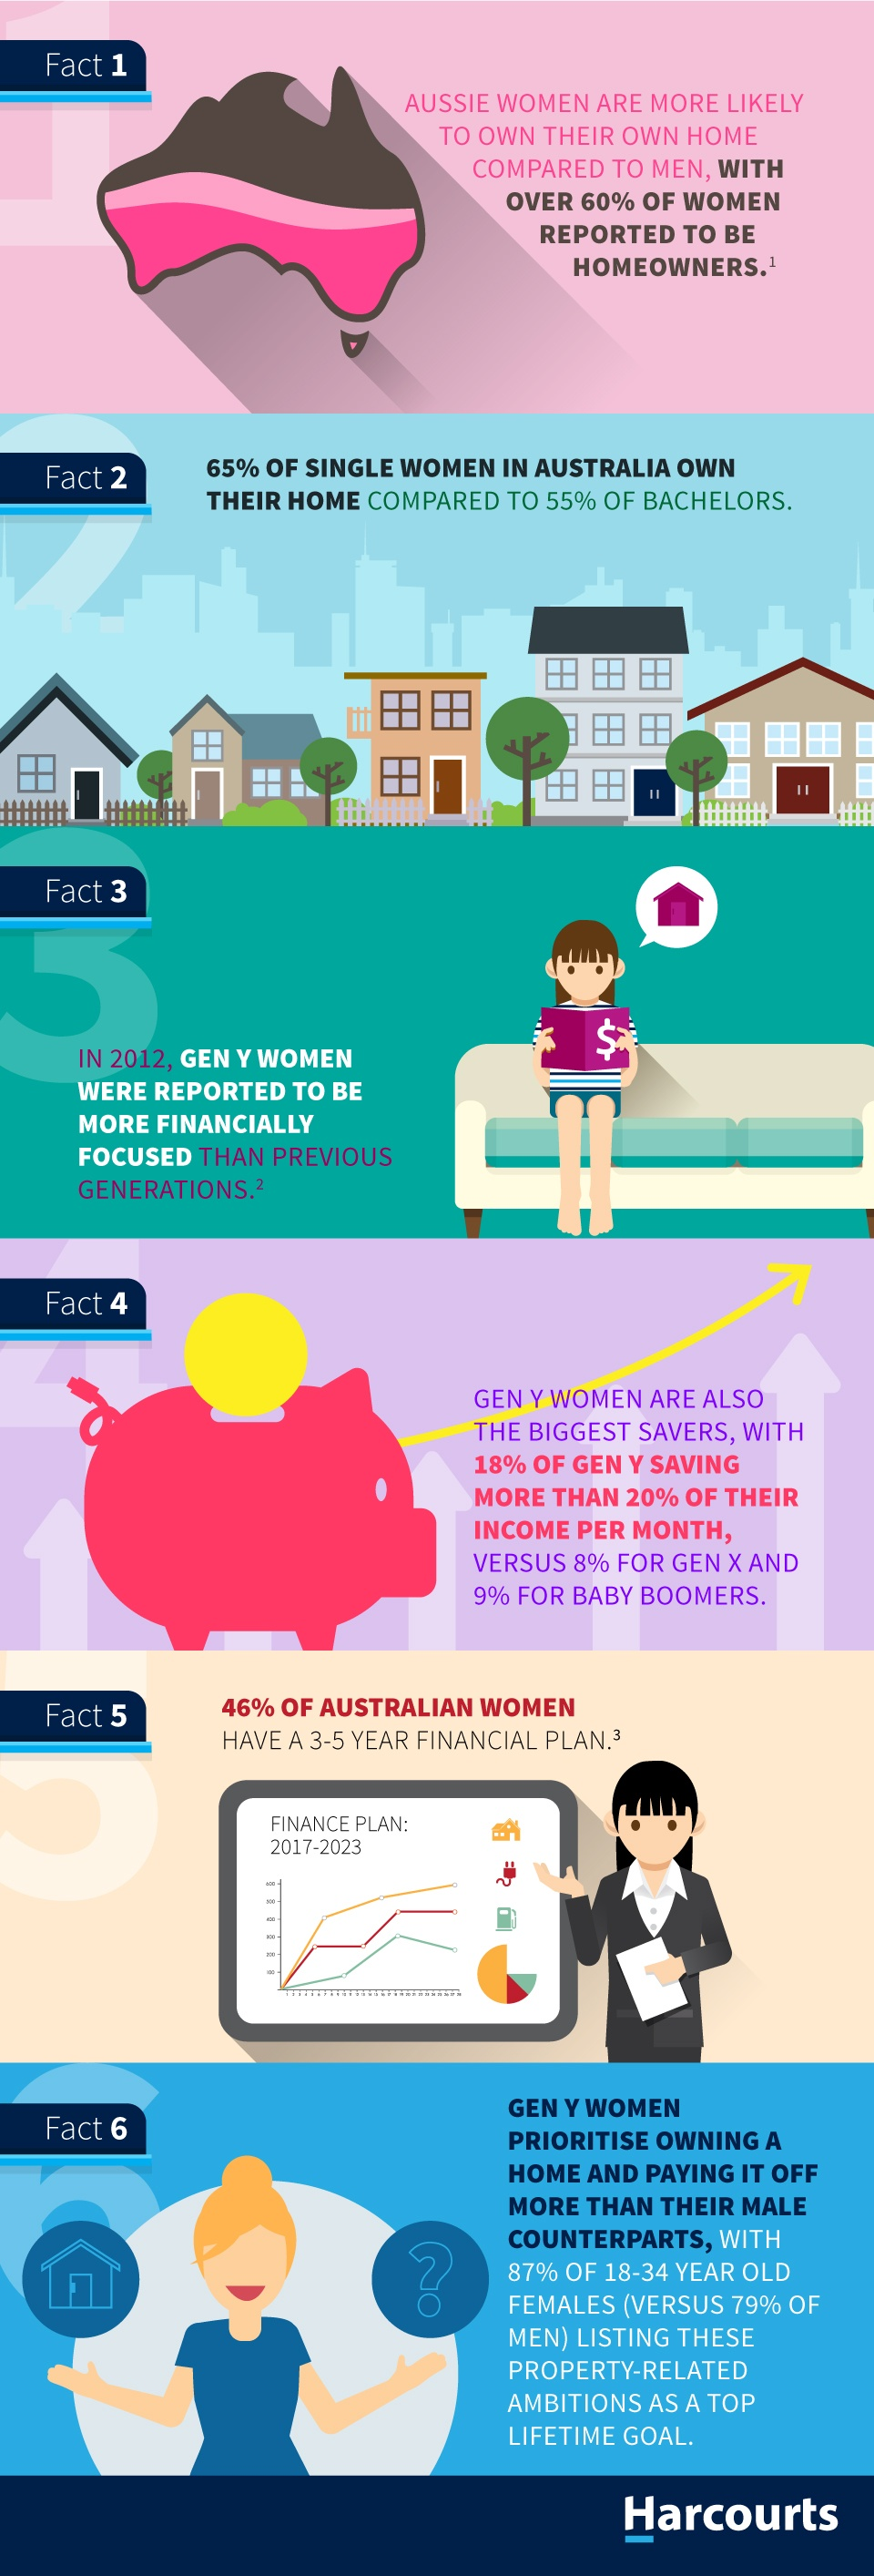 Aussie women prove their home-buying prowess